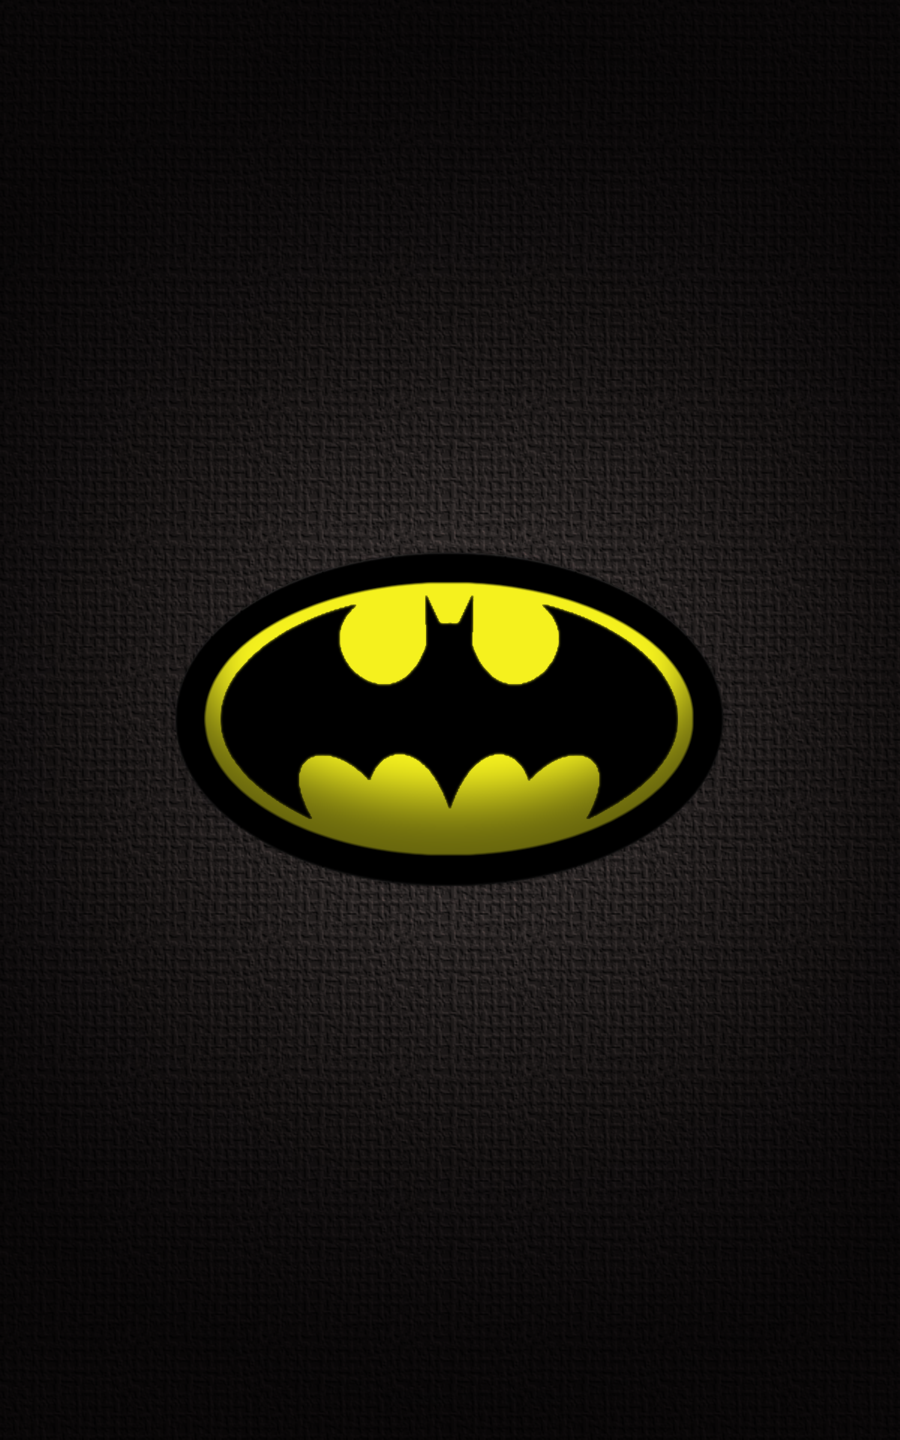 iphone_5_wallpaper_batman_logo